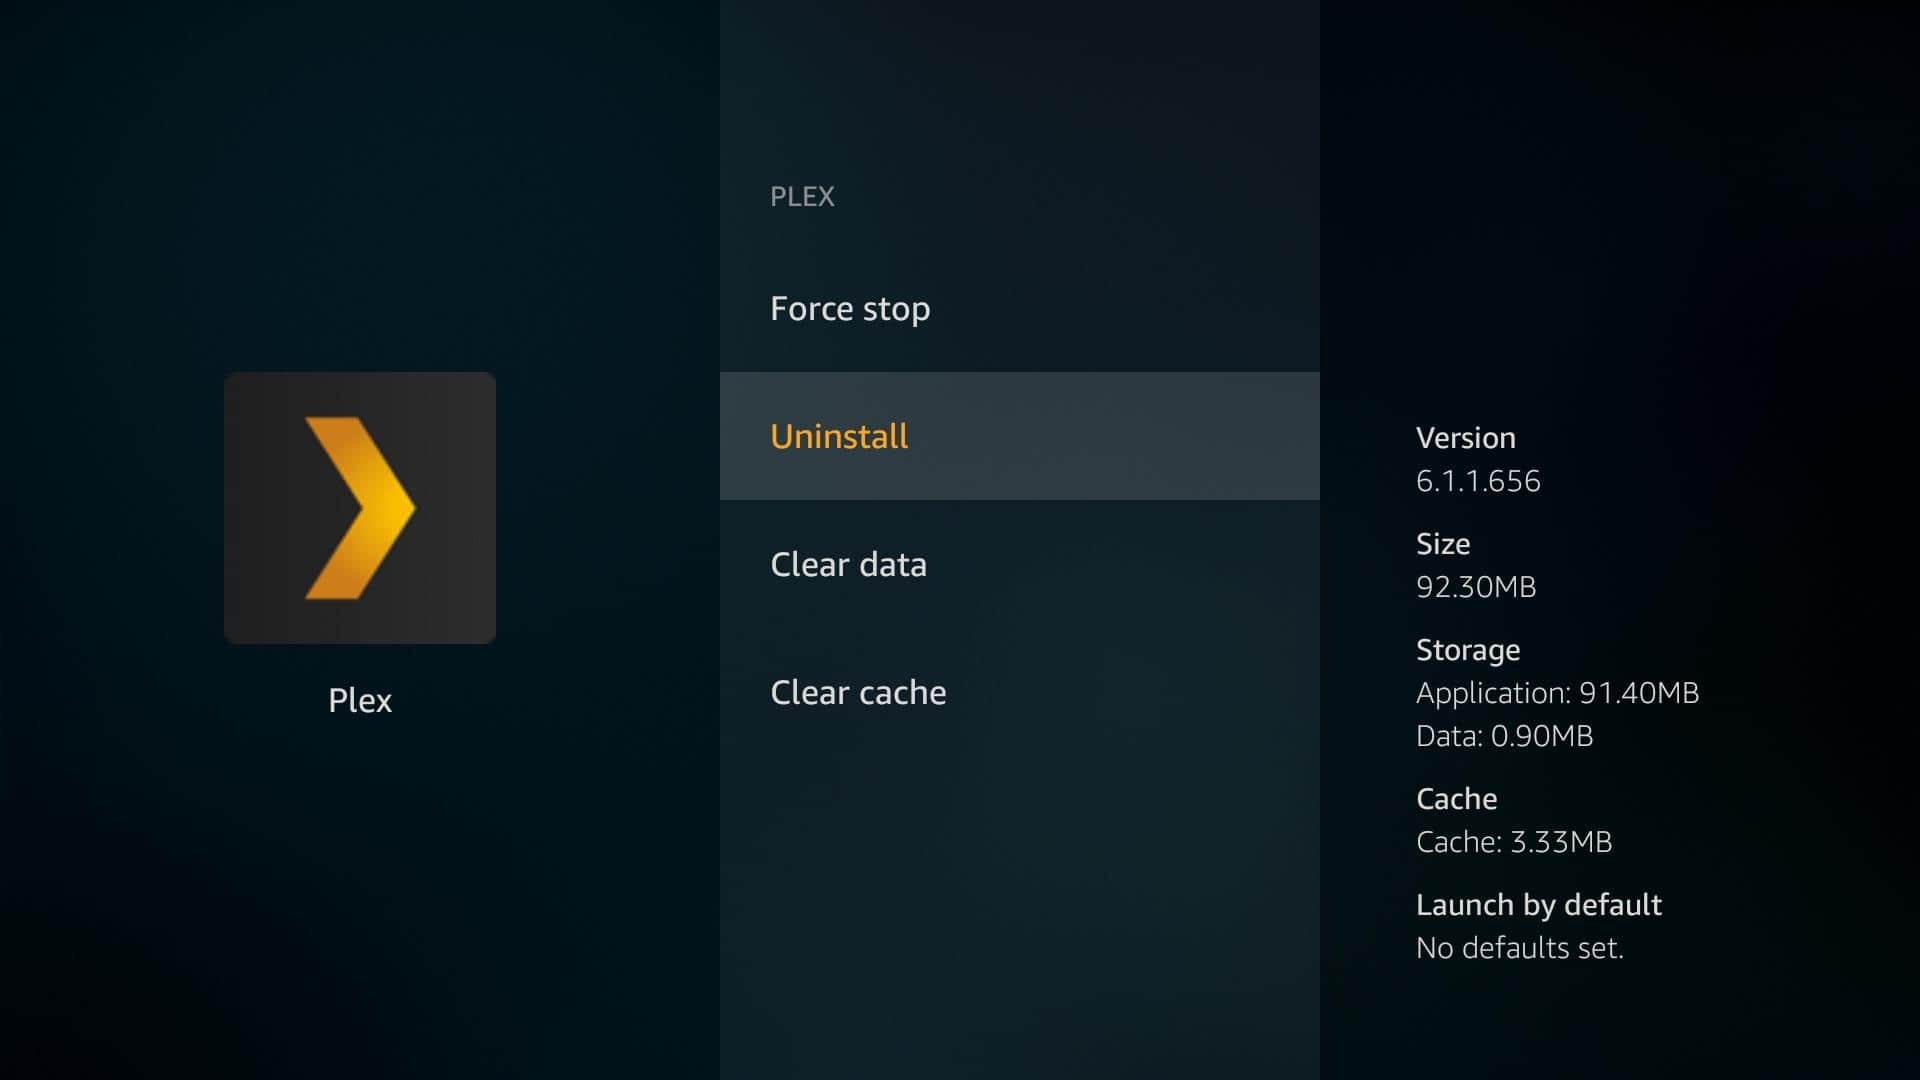 Fire TV Plex App - Uninstall 6